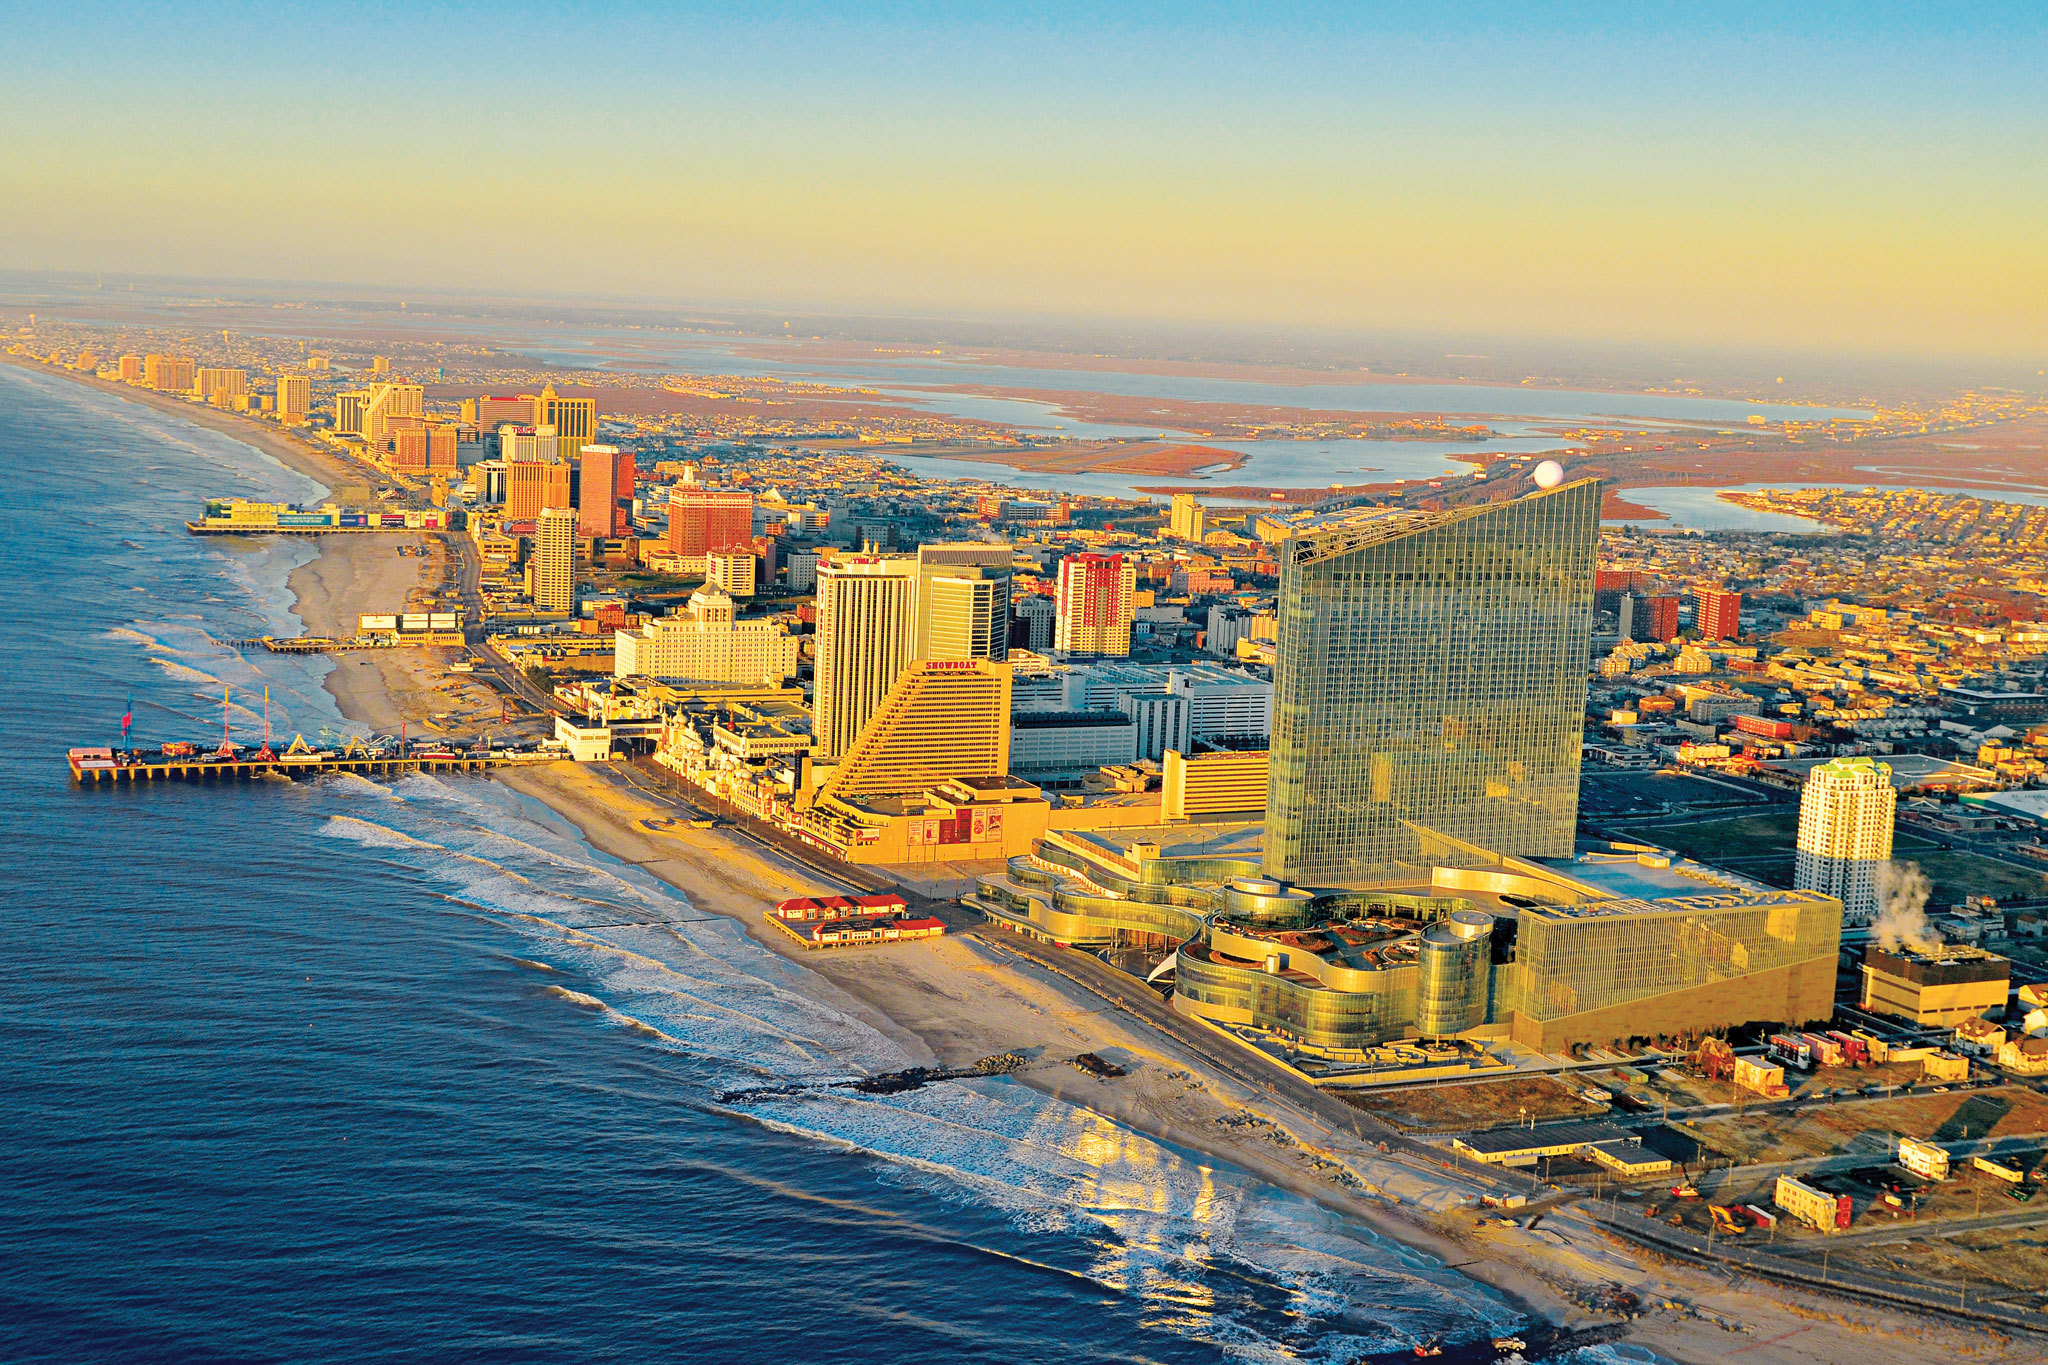 Guide to Atlantic City, NJ, including casinos, hotels and beaches